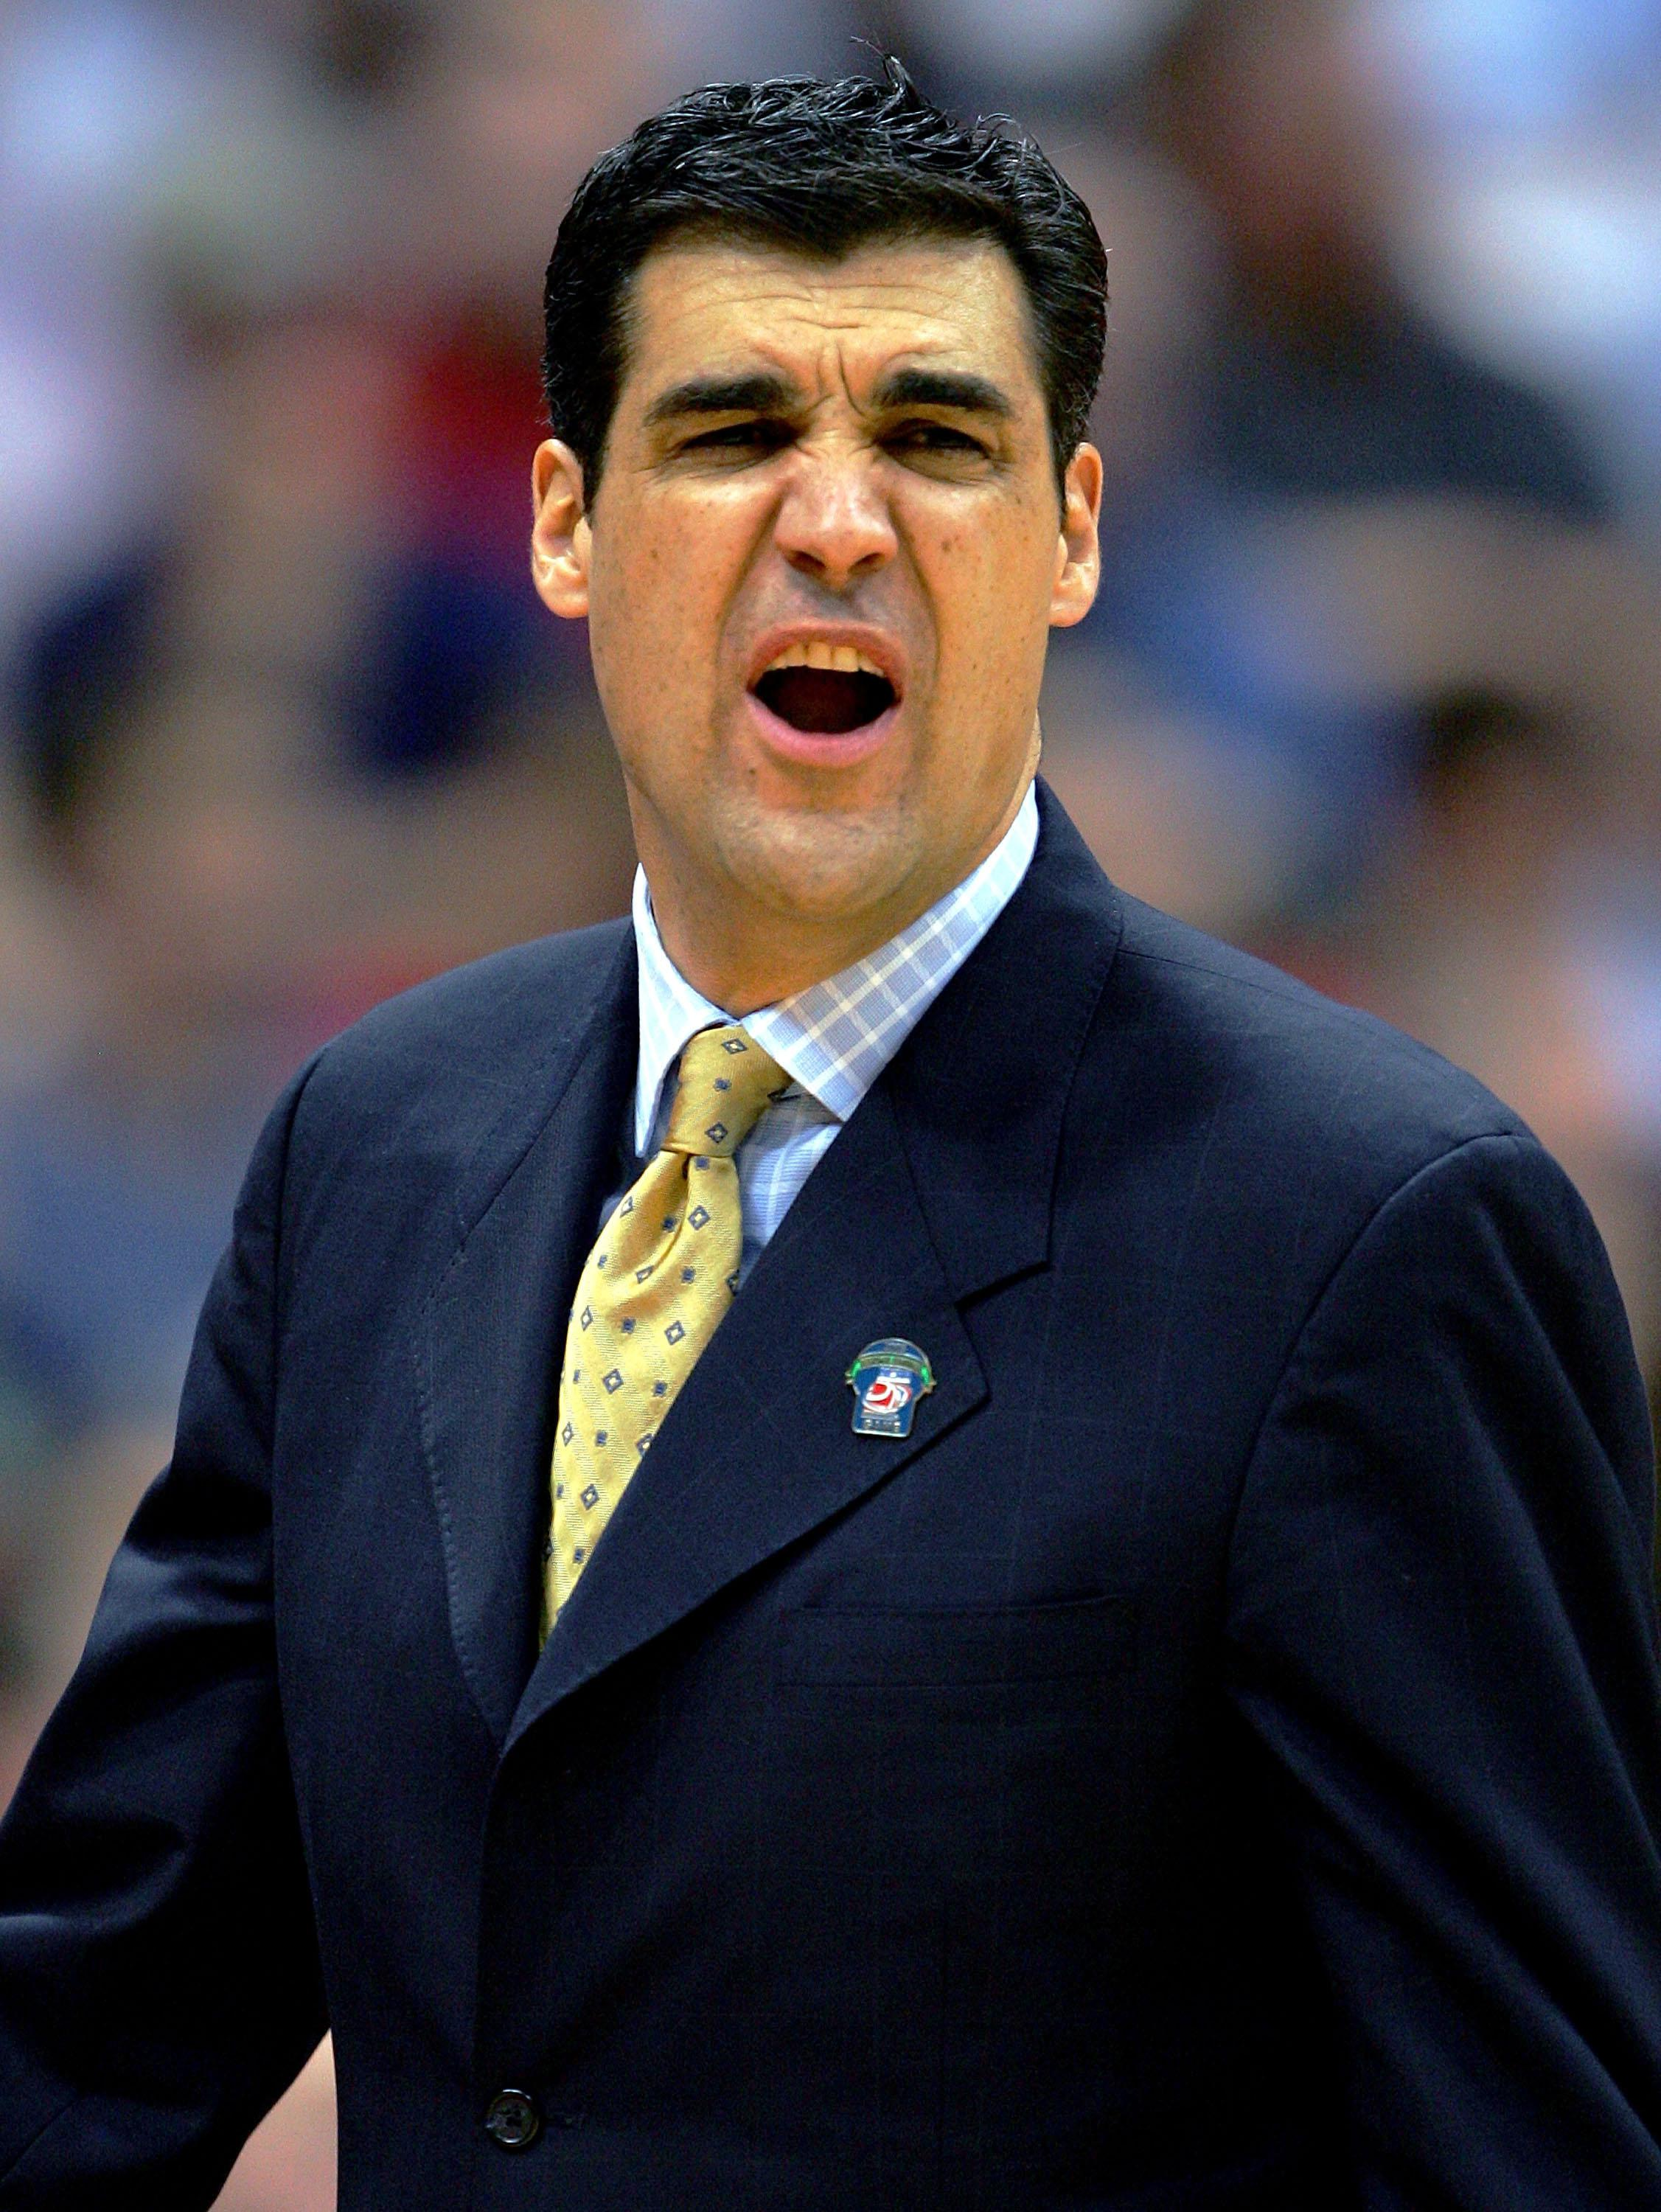 SYRACUSE, NY - MARCH 25:  Head coach Jay Wright of the Villanova Wildcats shouts during their regional semi-final game against the North Carolina Tar Heels on March 25, 2005 at the Carrier Dome in Syracuse, New York.  (Photo by Jamie Squire/Getty Images)